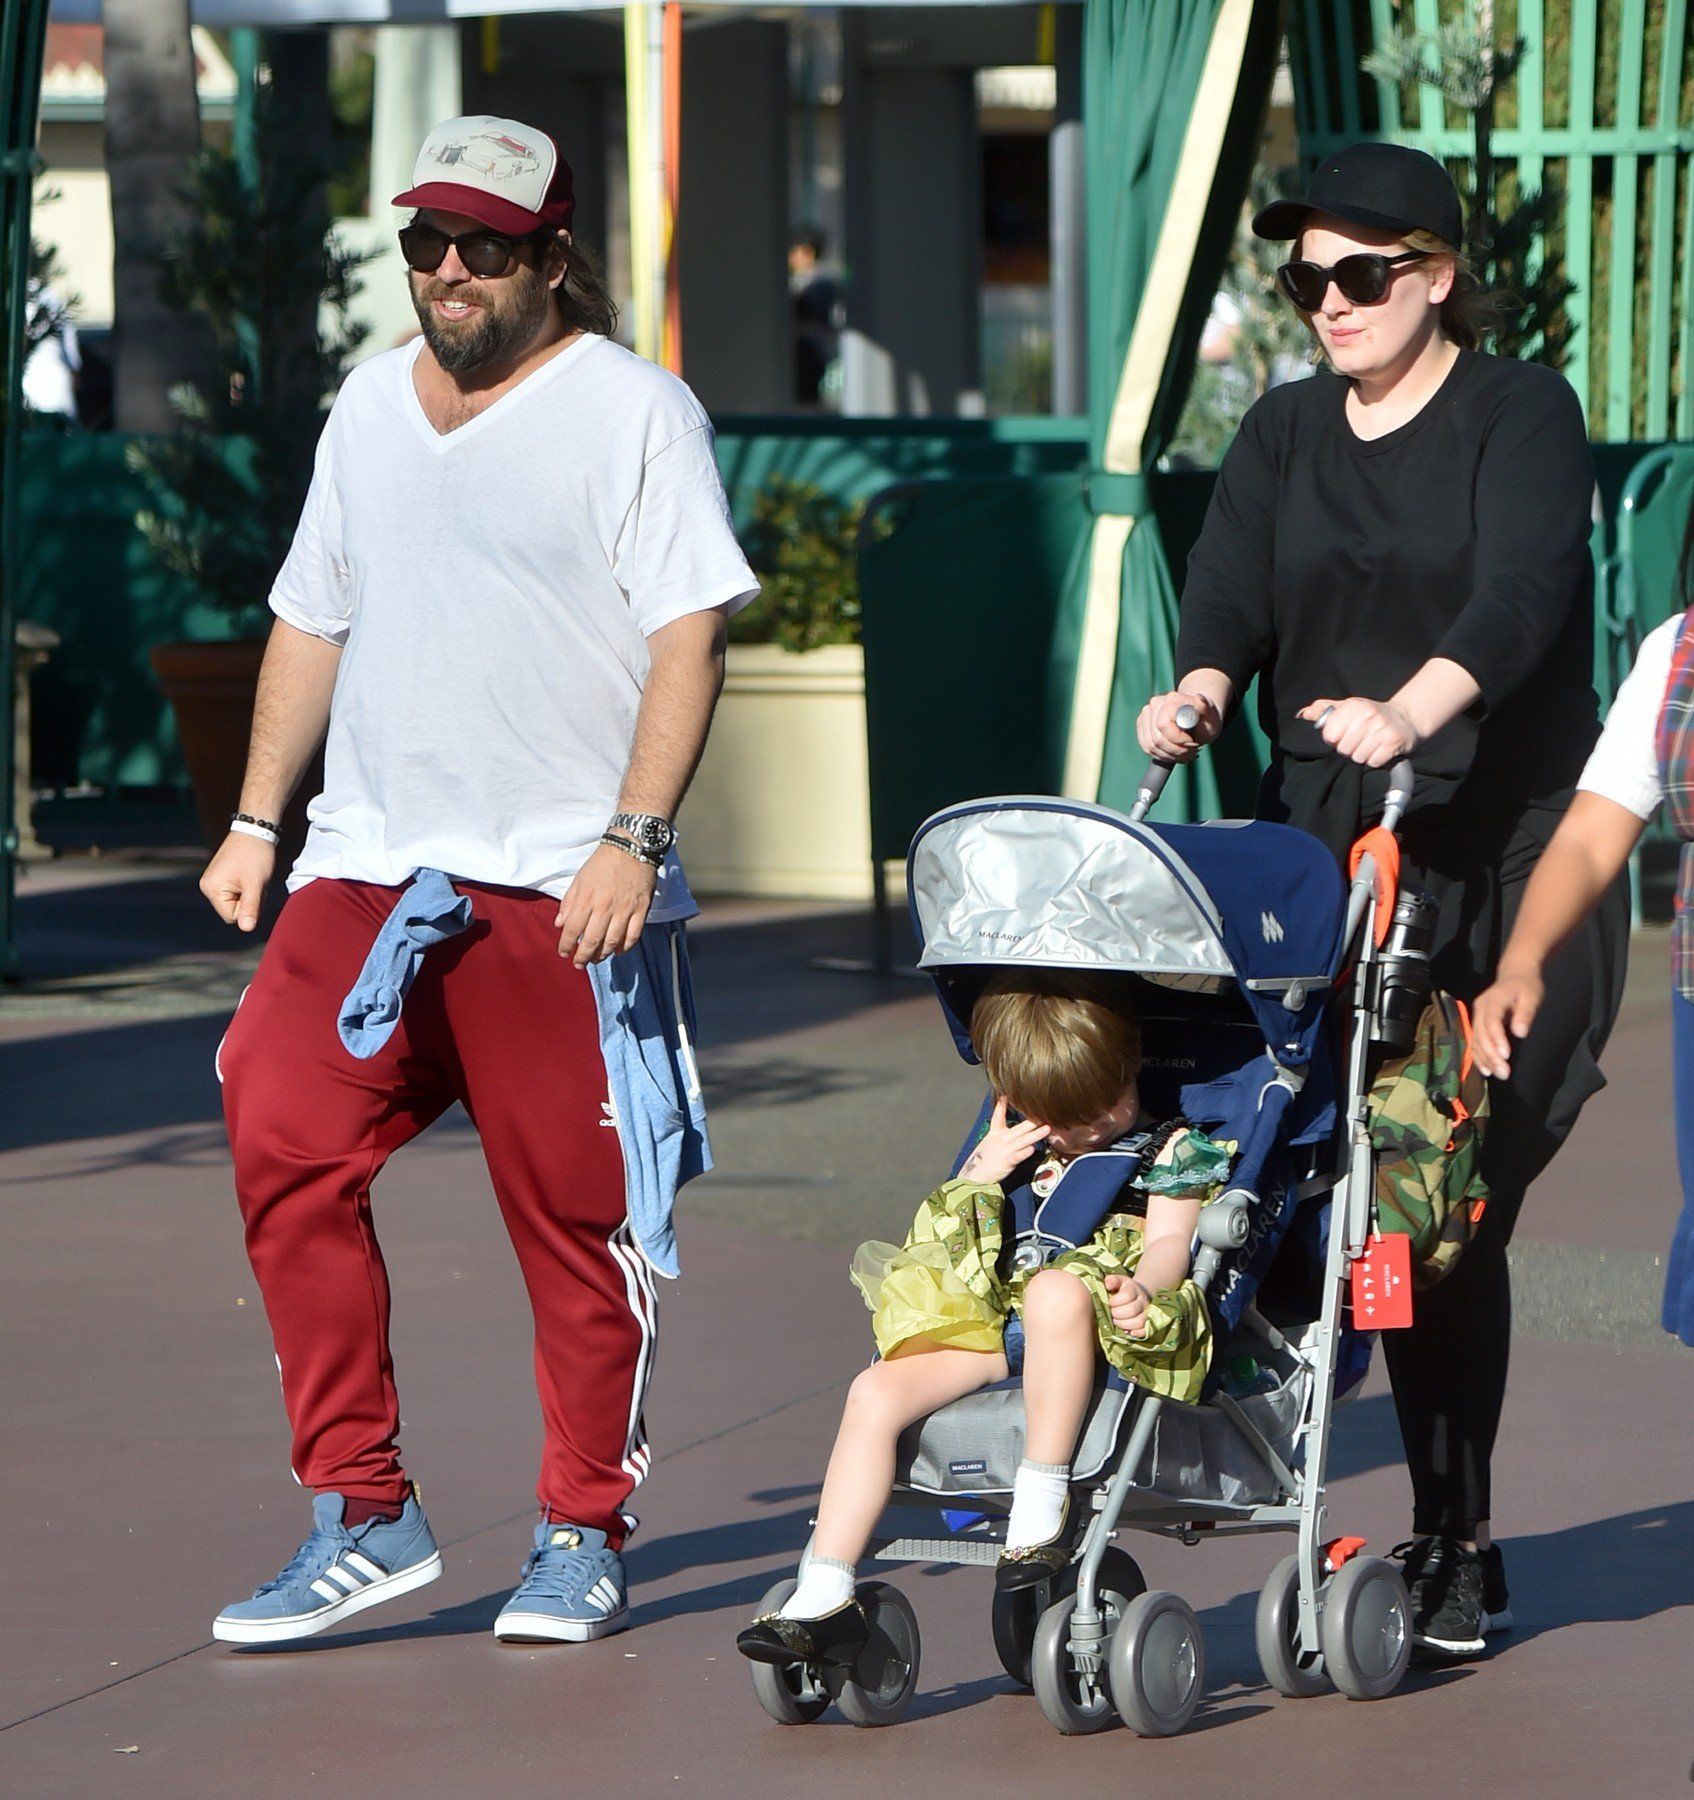 *PREMIUM EXCLUSIVE* **MUST CALL FOR PRICING** Anaheim, CA - Adele and her boyfriend Simon Konecki make it a family day at Disneyland with their son Angelo. The happy family were seen spending an amazing day at Disneyland as they enjoy all the attractions that the park has to offer including rides in Fantasyland and Toontown. Adele keeps a low key presence wearing all black with a cap and shades.  **NO FRANCE, NO GERMANY**         February 14, 2016, Image: 274217032, License: Rights-managed, Restrictions: NO Brazil, NO France, NO Germany, Model Release: no, Credit line: Profimedia, Backgrid USA